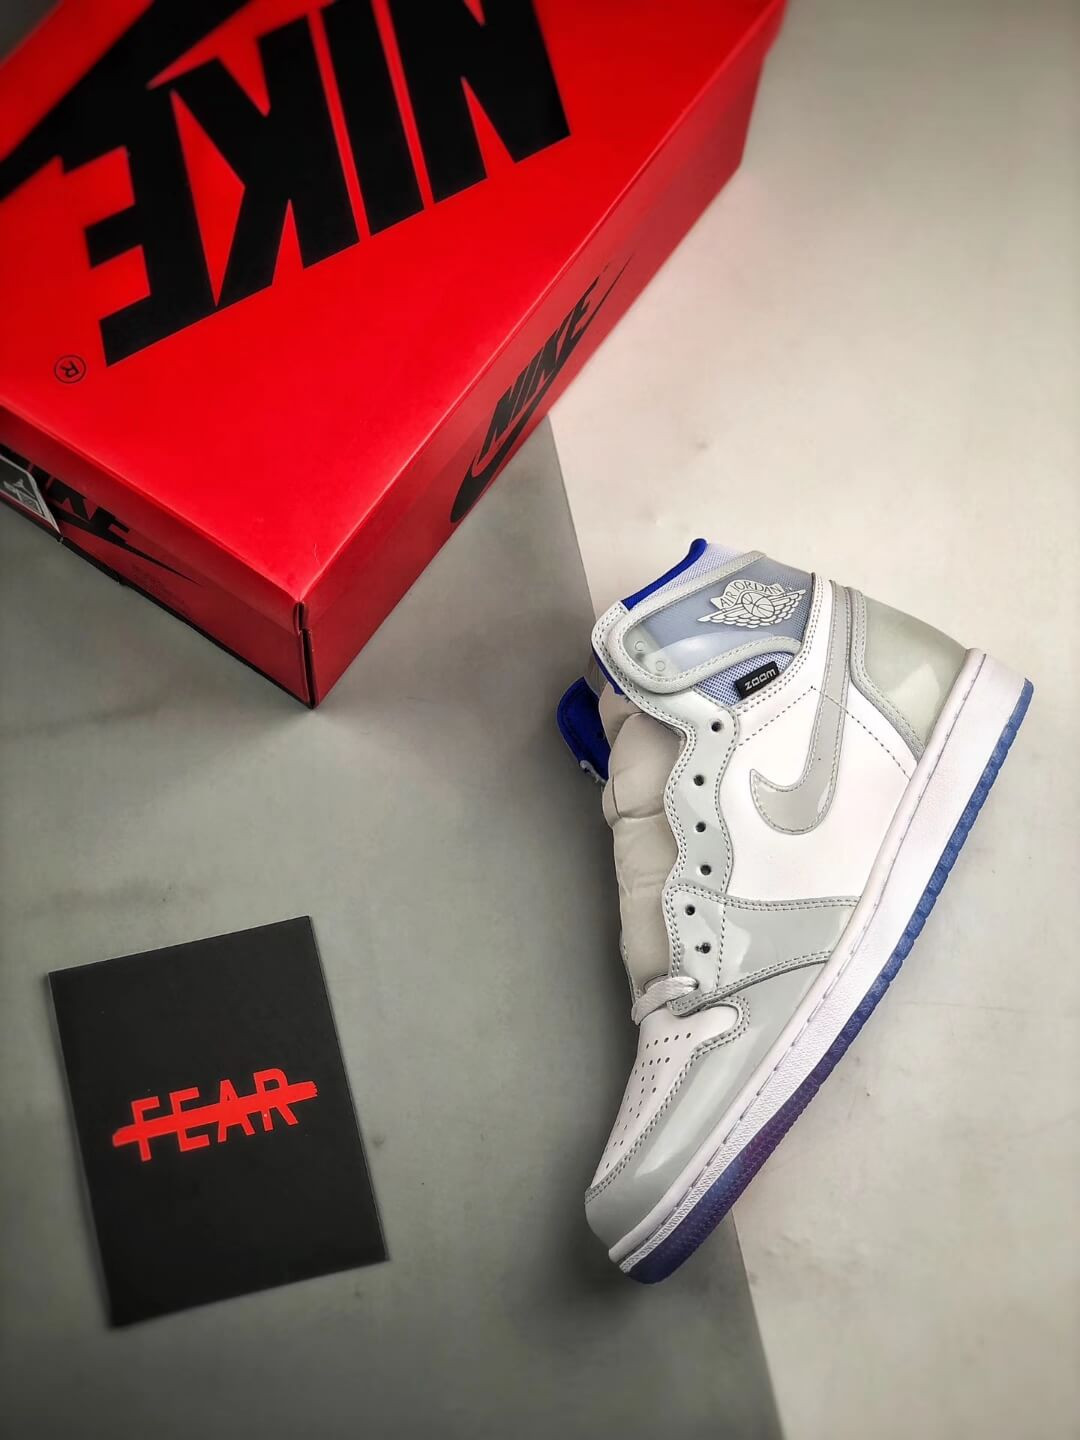 The Air Jordan 1 Retro High Zoom Racer Blue RepShoes 09